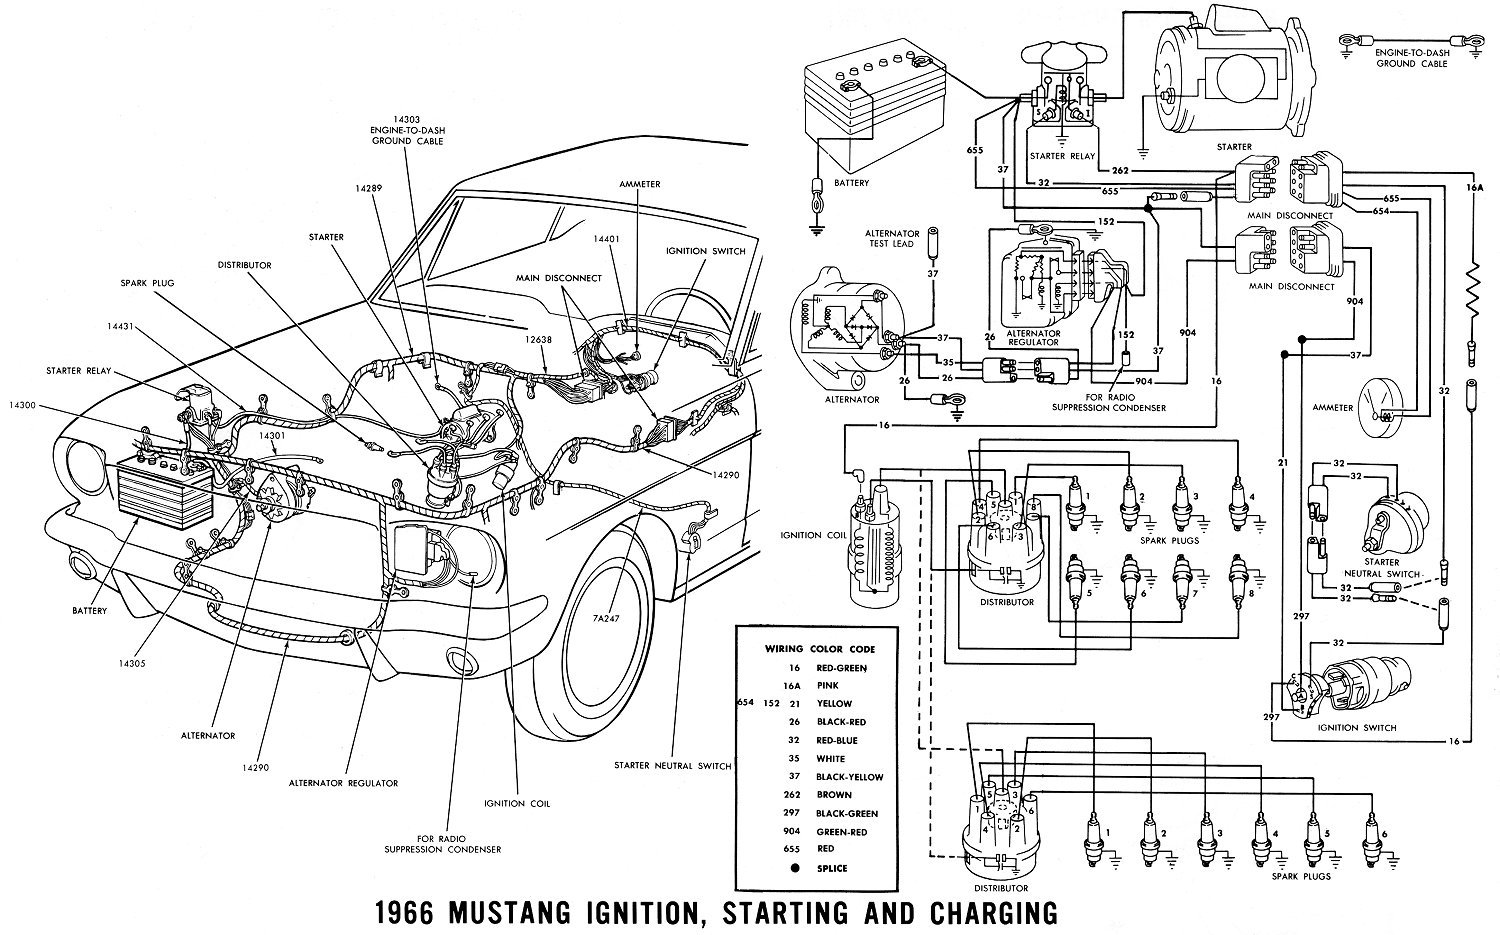 D Mustang Ignition Switch Diagram What Pins What Ignit